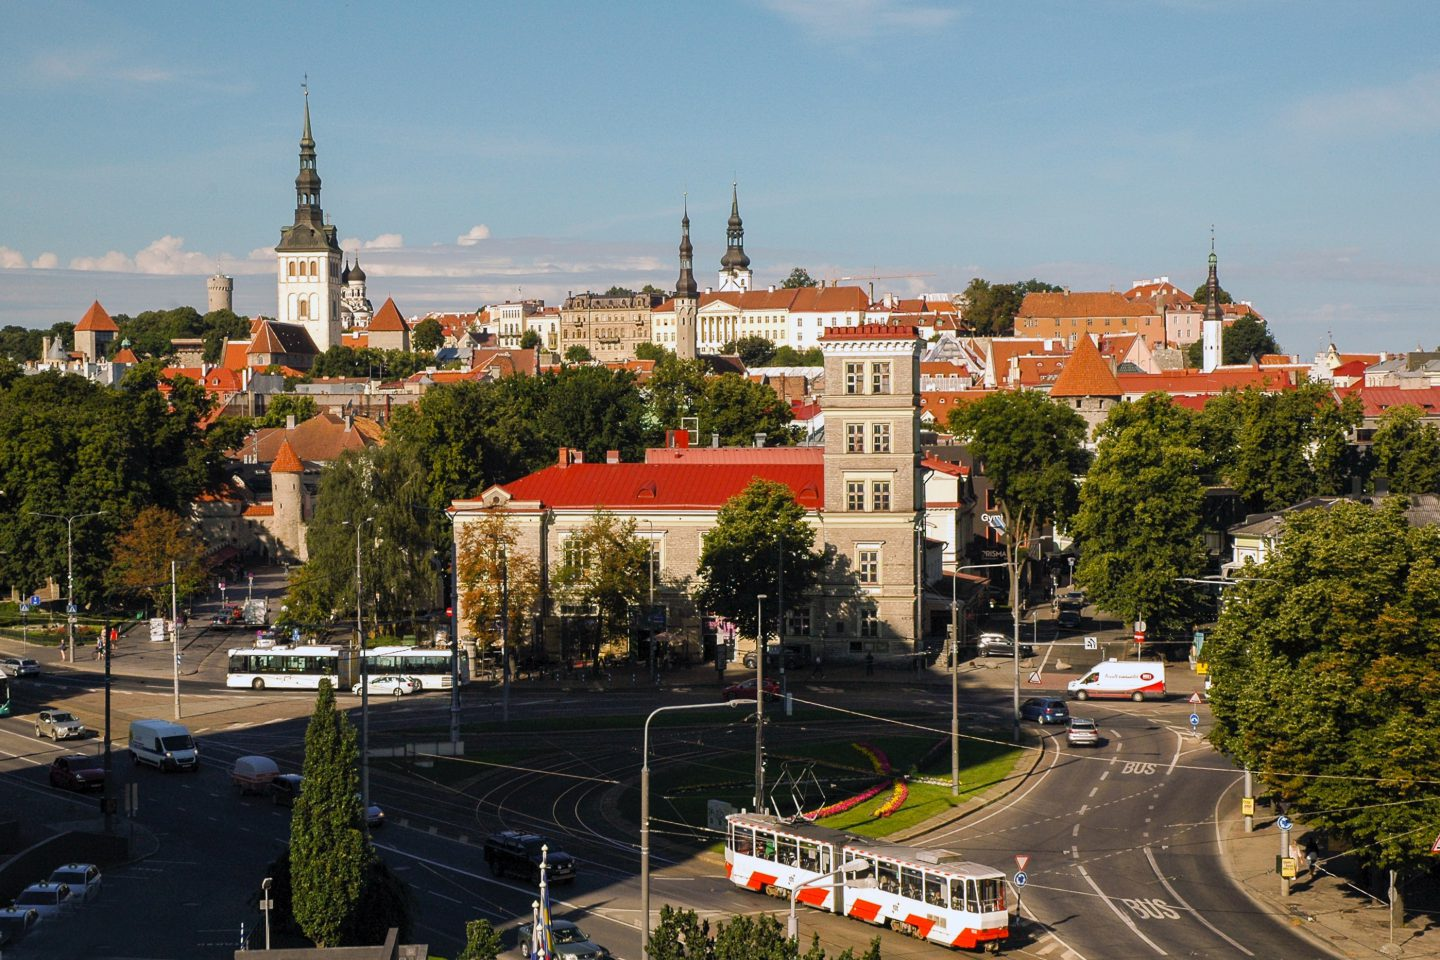 Welcome to E-Estonia, the tiny nation that's leading Europe in digital innovation